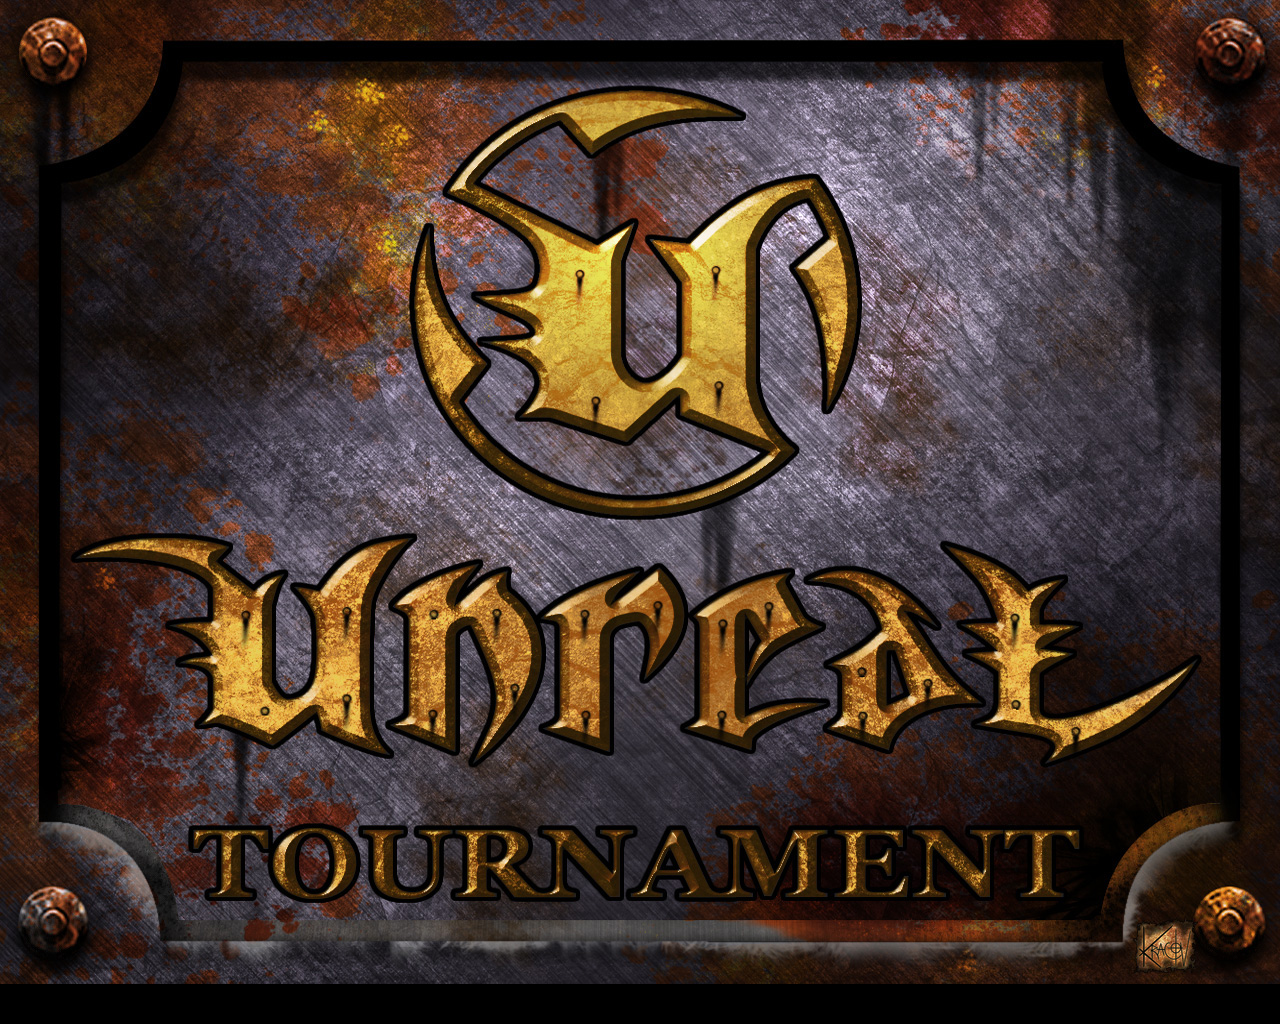 Unreal Tournament wallpapers, Video Game, HQ Unreal